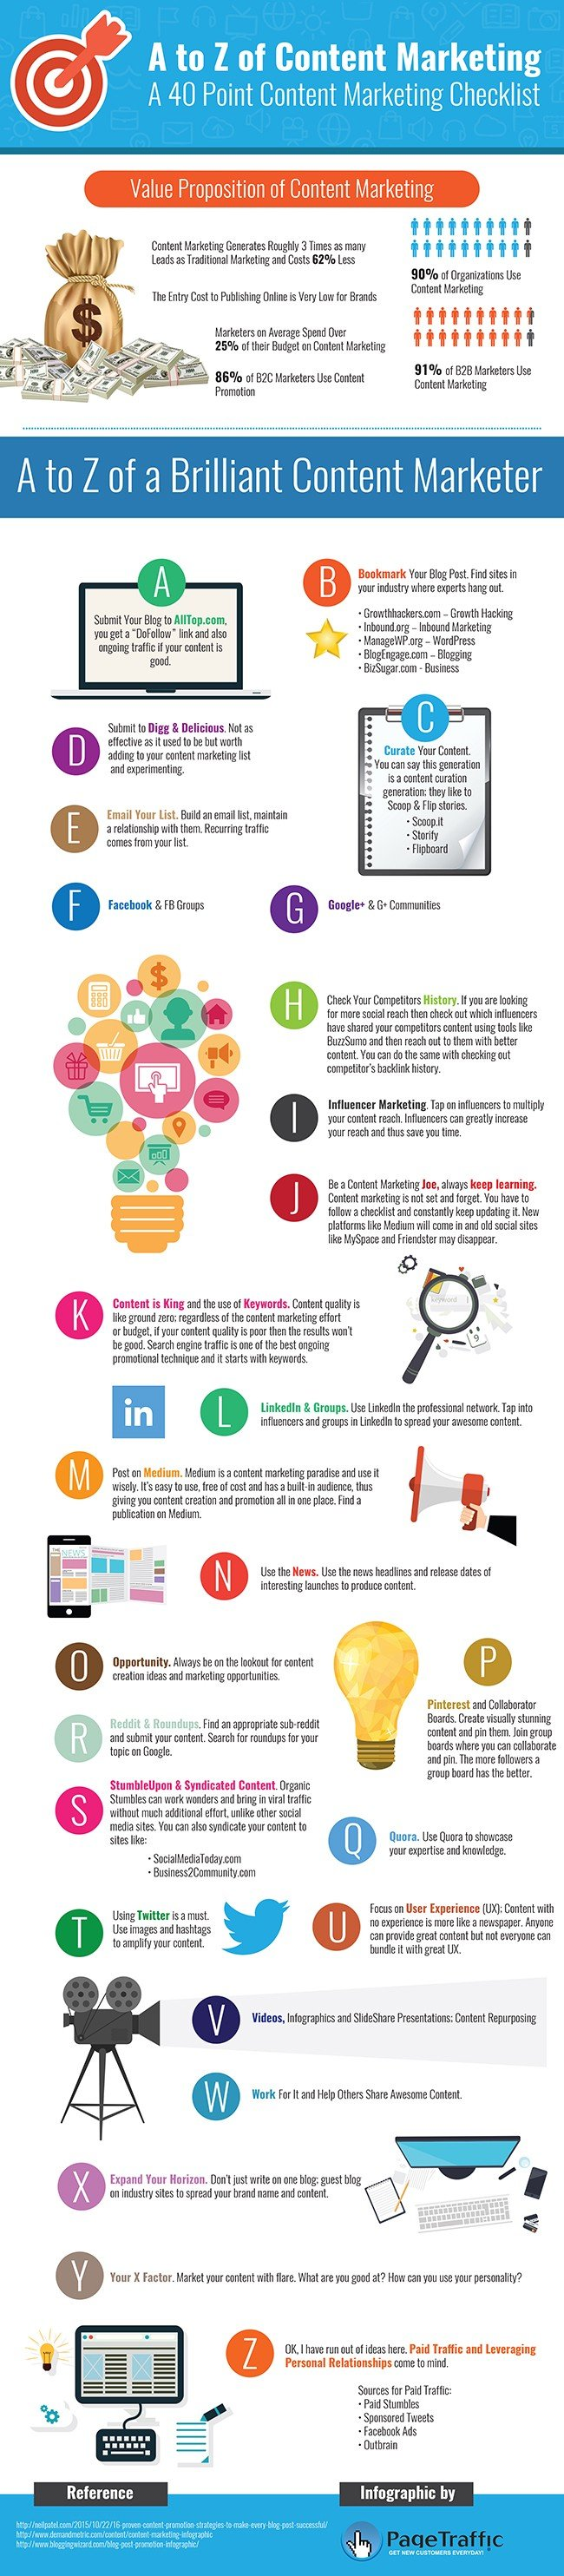 Infographic A to Z of Content Marketing